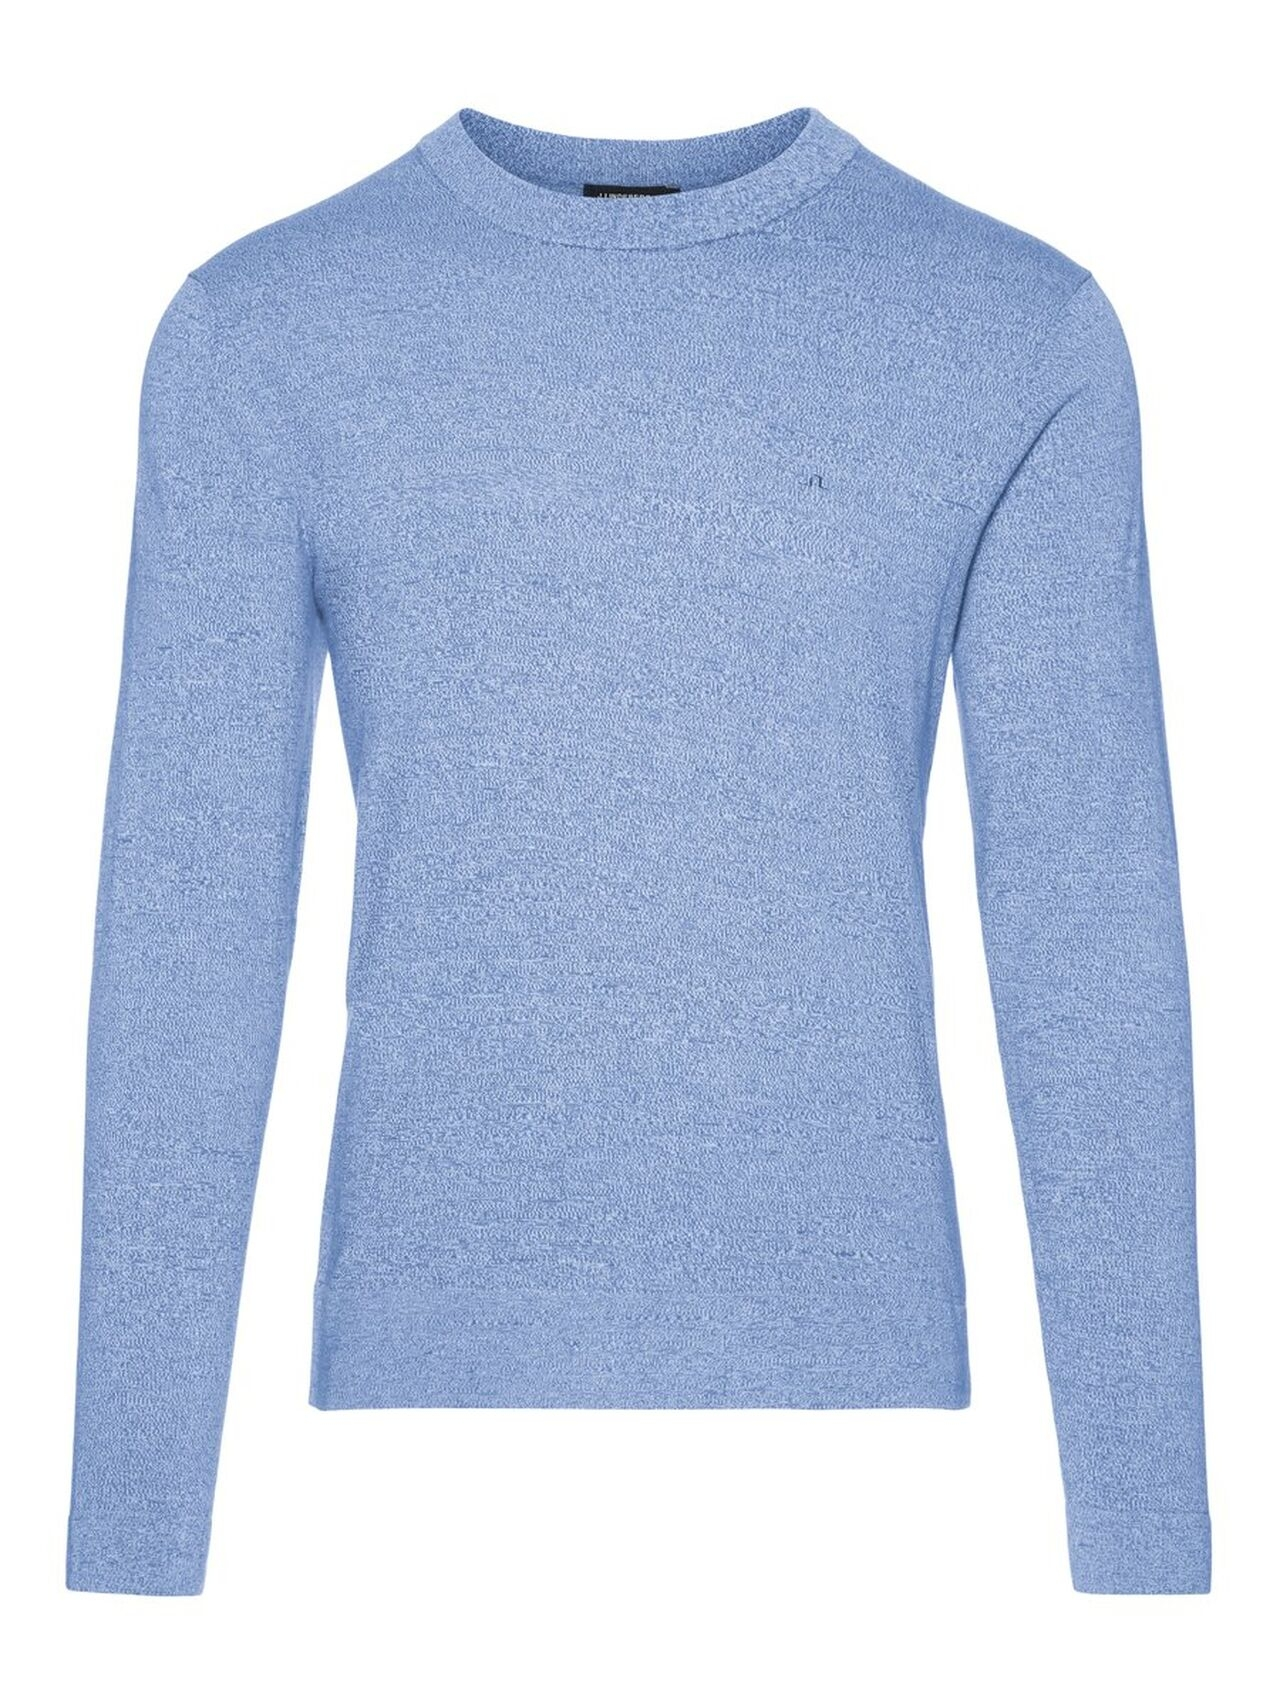 J.LINDEBERG Niklas R-neck Refined Cotton Sweater Man Blå